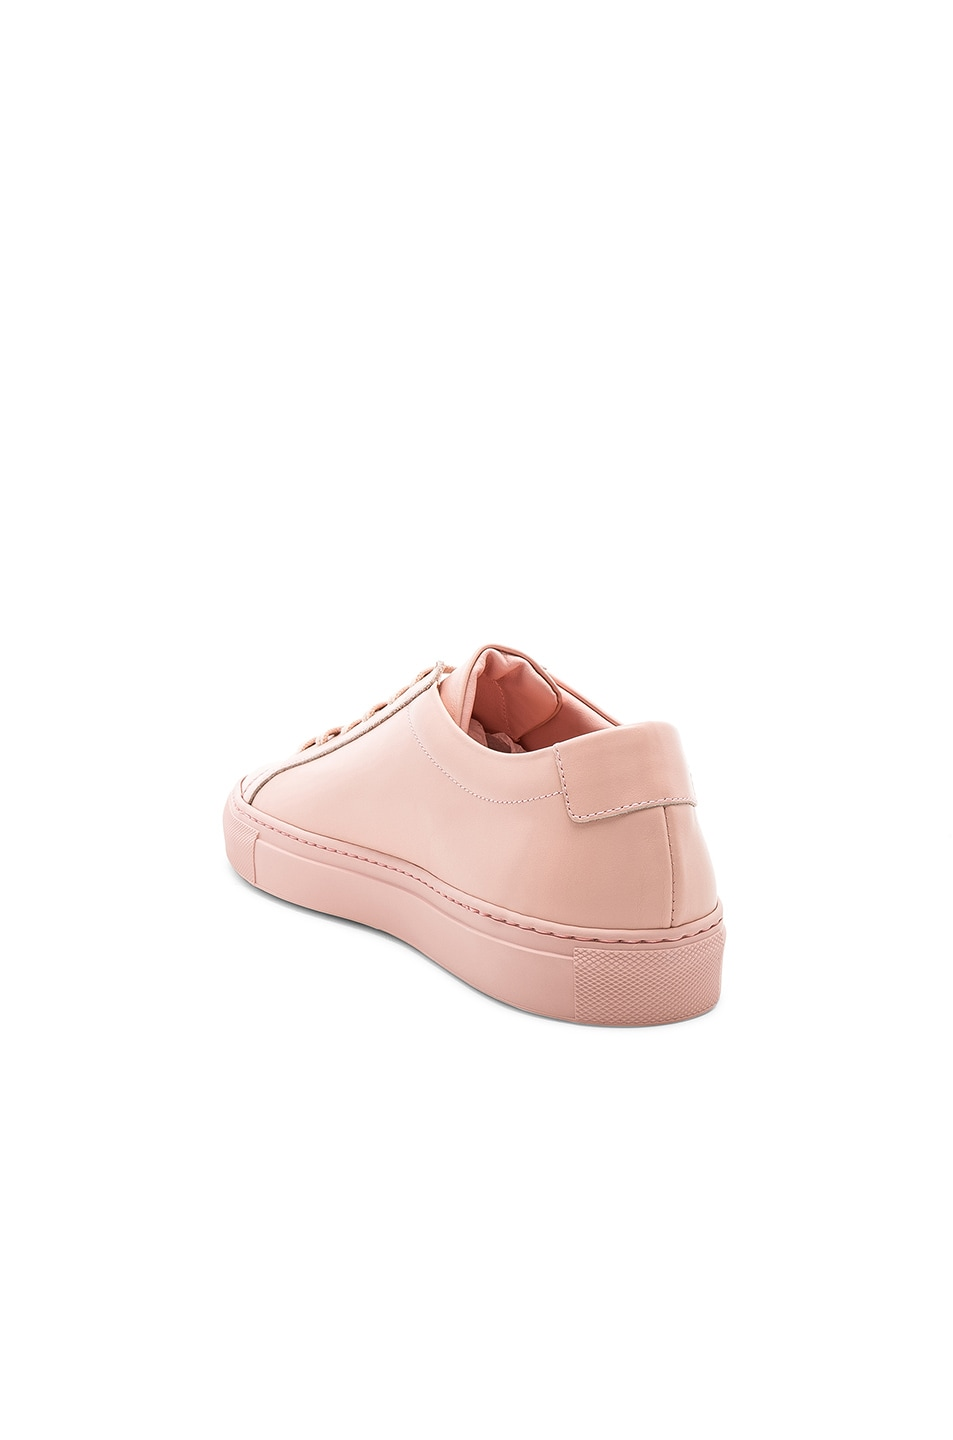 Image 3 of Common Projects Original Leather Achilles Low in Blush